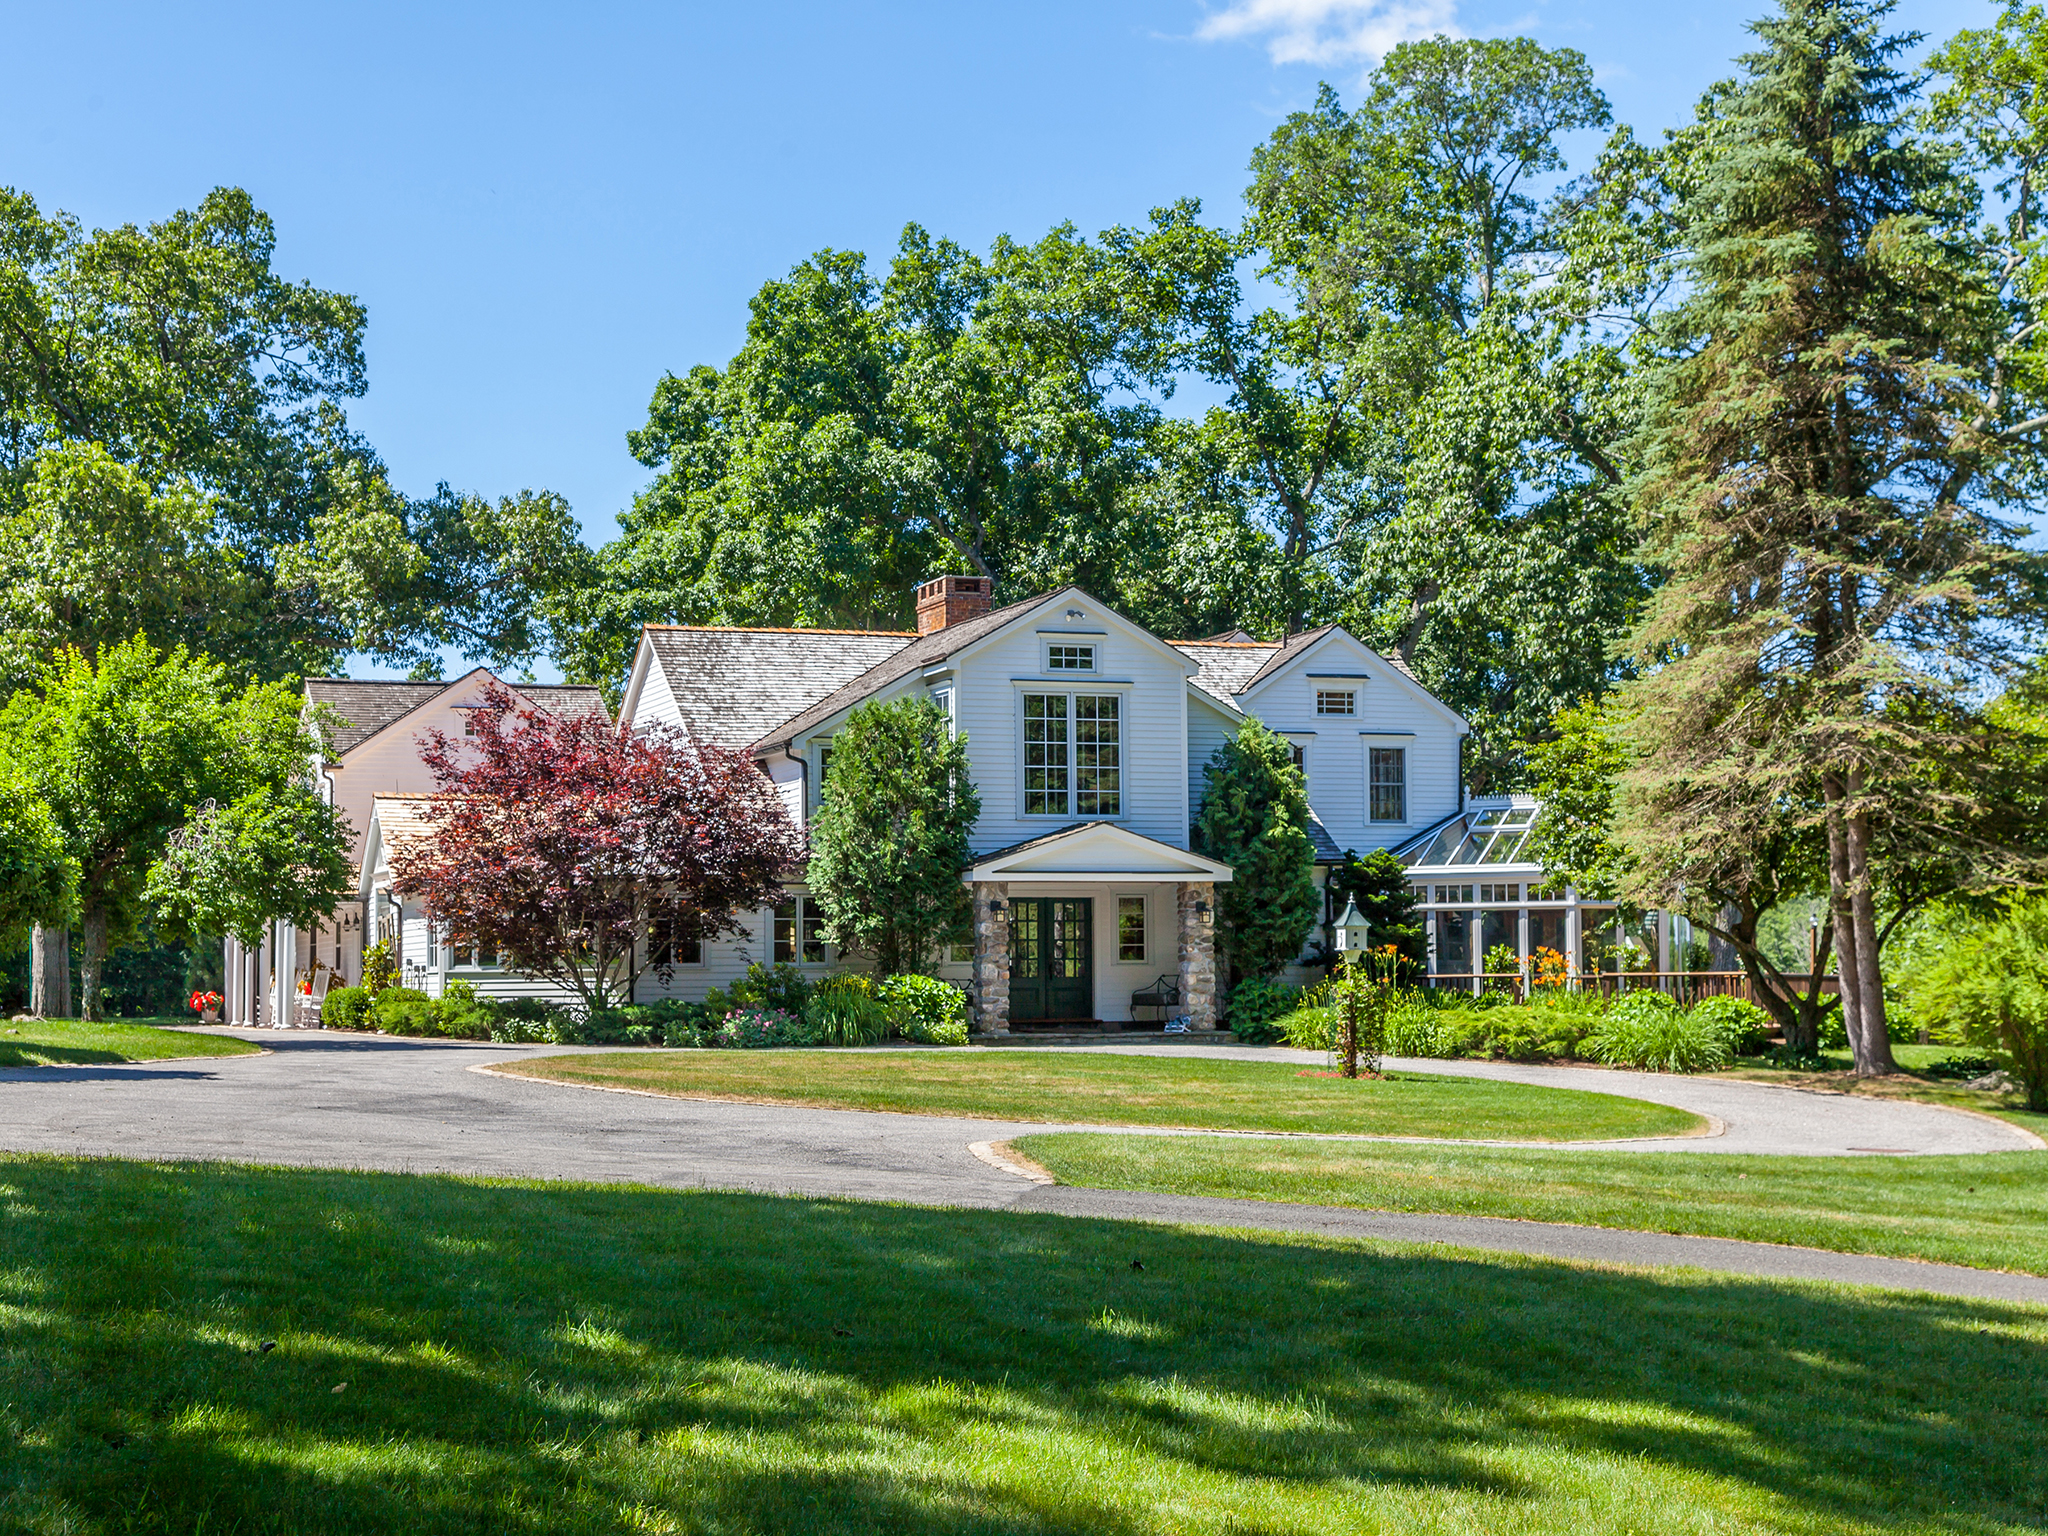 Single Family Home for Sale at Gentleman's Farm 86 Roxbury Rd Washington, Connecticut, 06793 United States